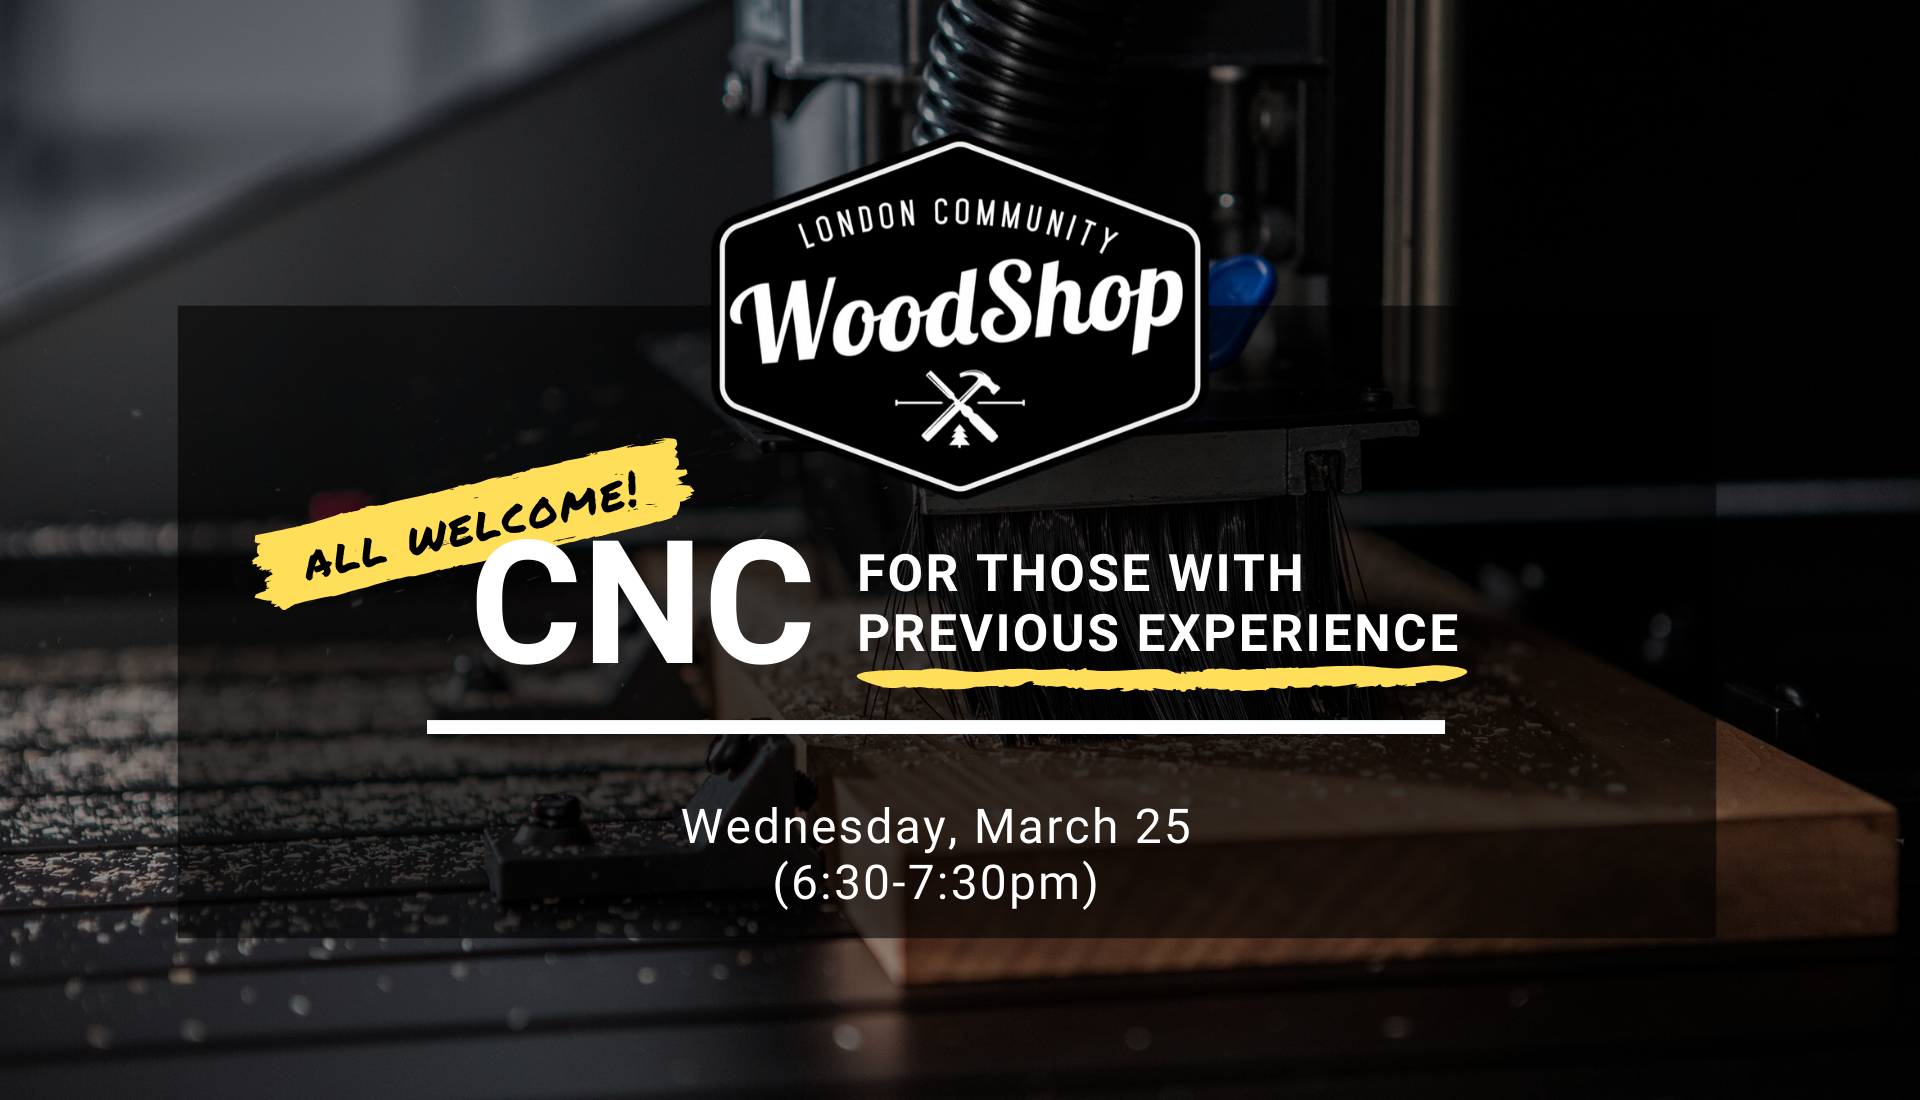 CNC Workshop for Previous Experience - Wednesday March 25